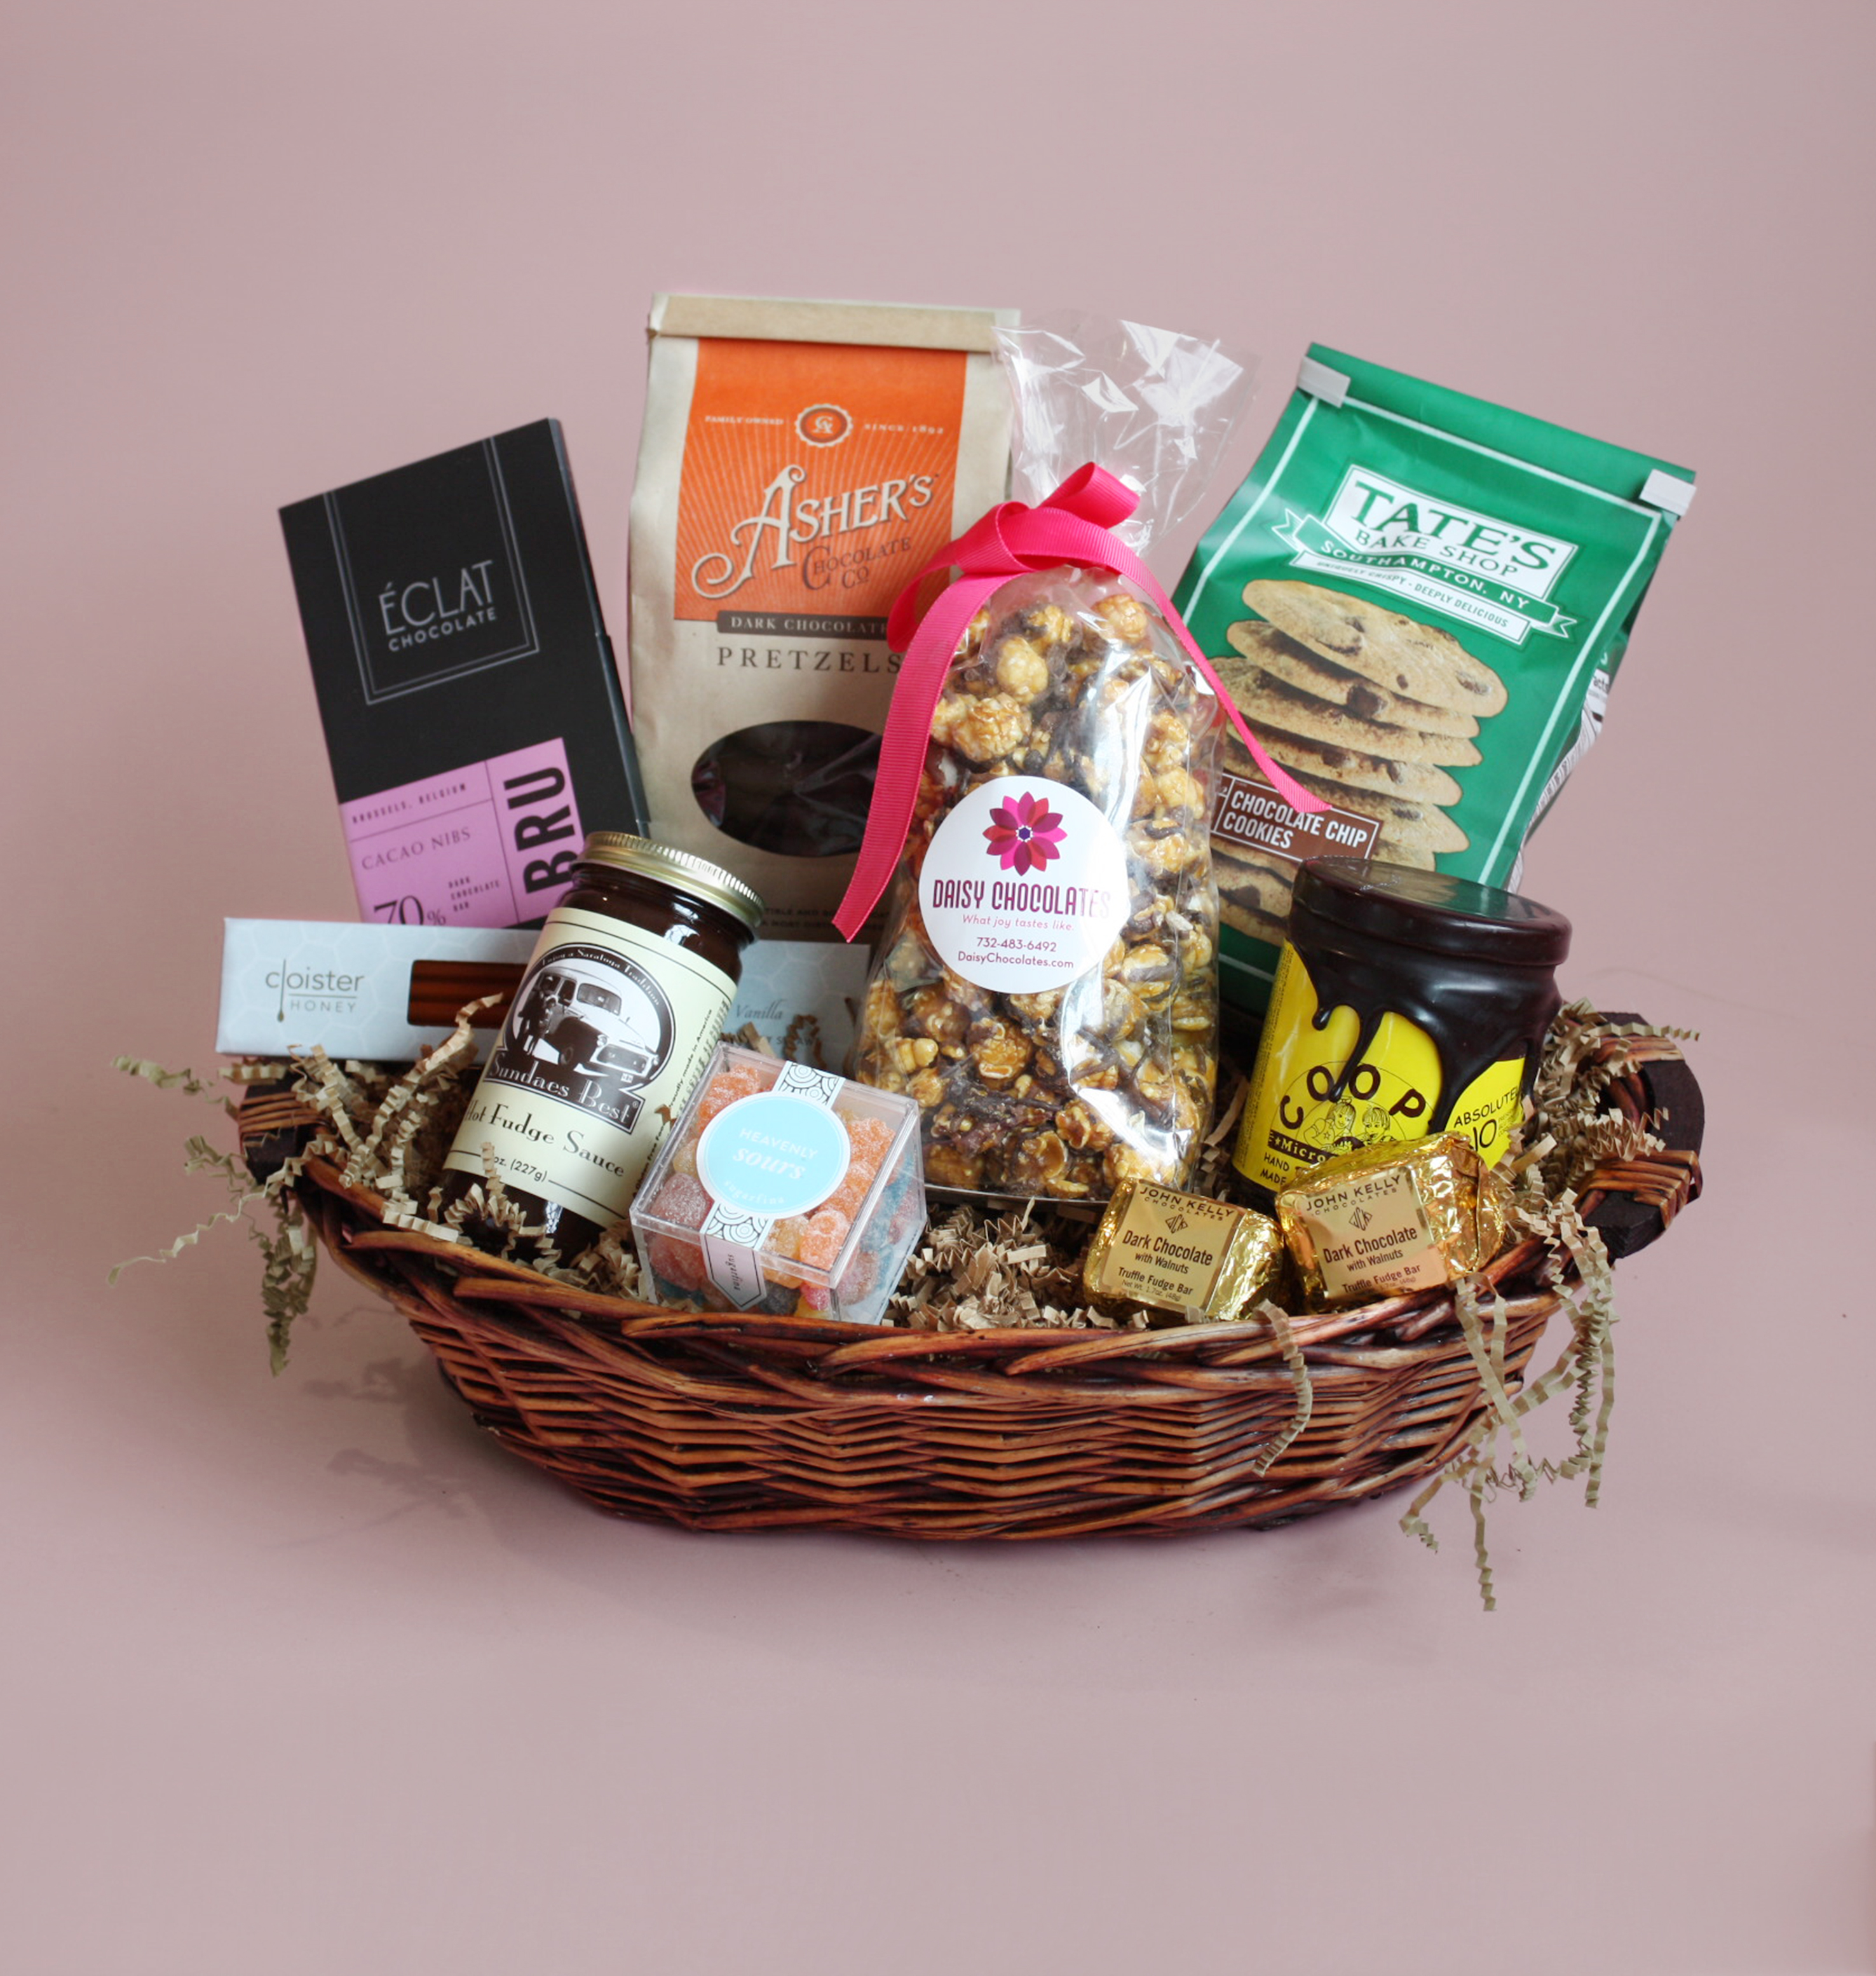 Sweets Gourmet Gift Basket from Valley Forge Flowers in Wayne, PA